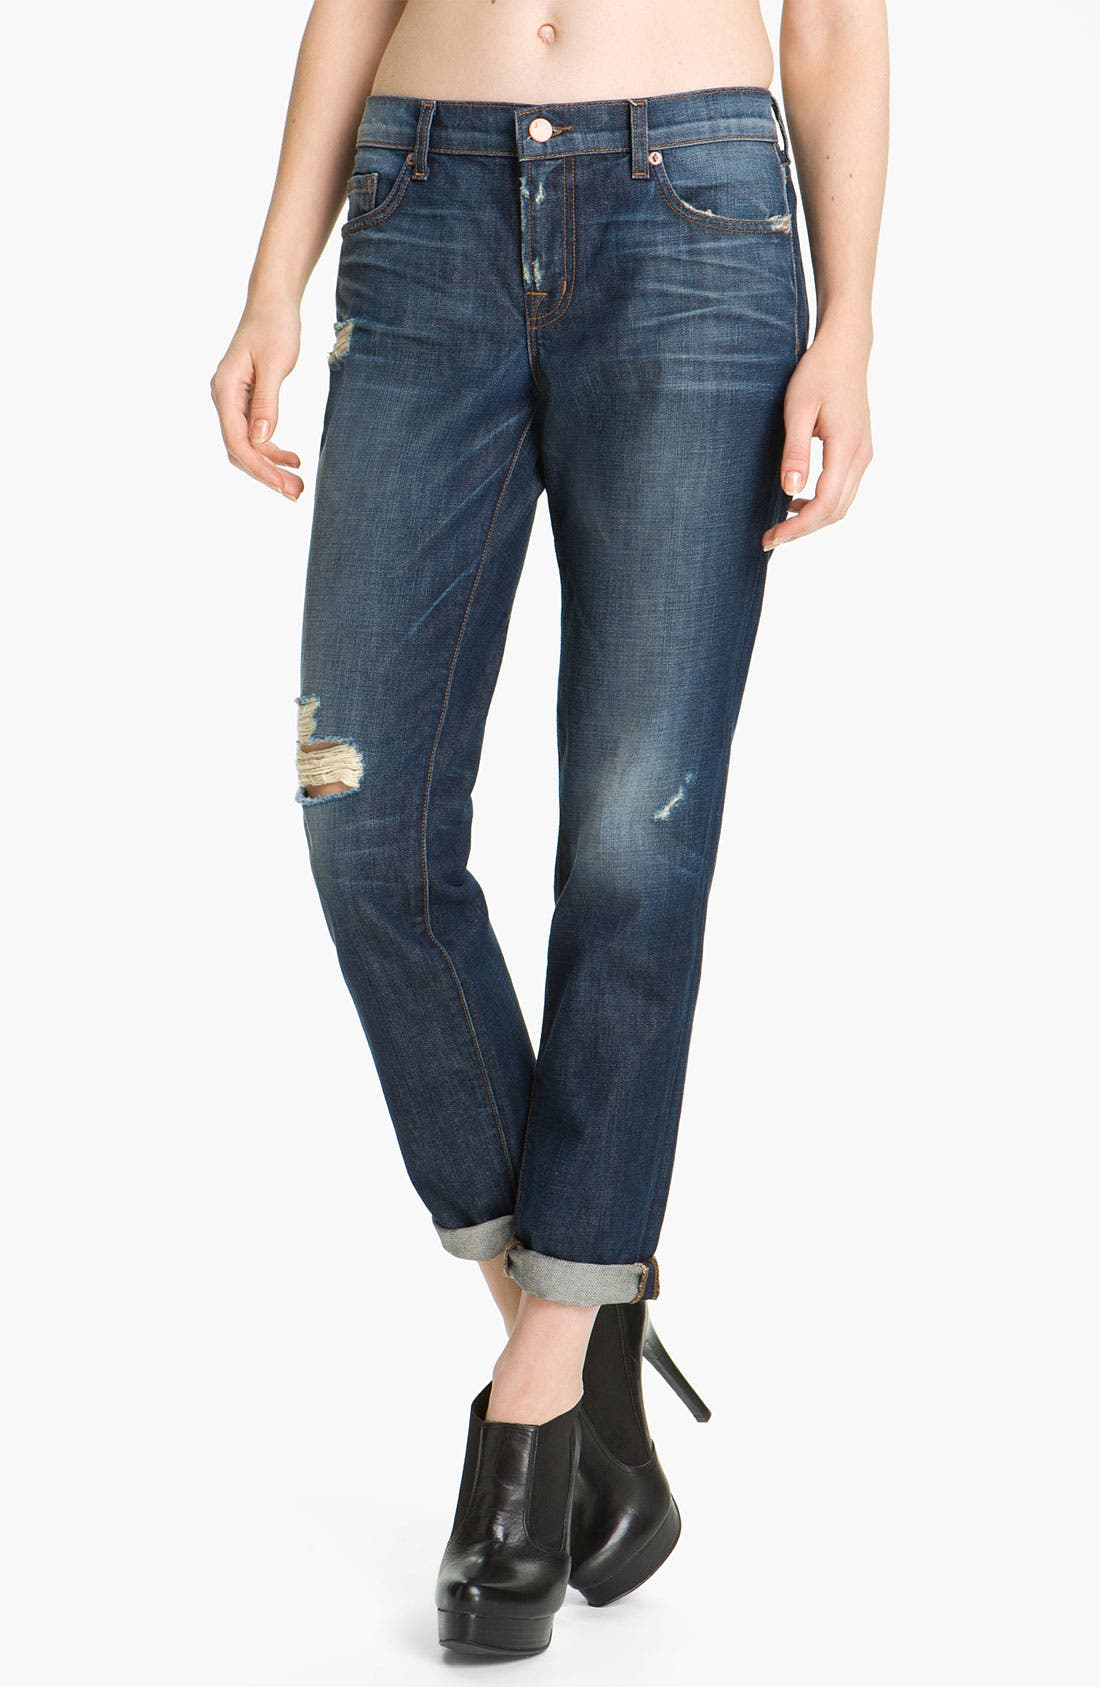 Alternate Image 1 Selected - J Brand 'Aidan' Distressed Boyfriend Fit Jeans (Ringer)